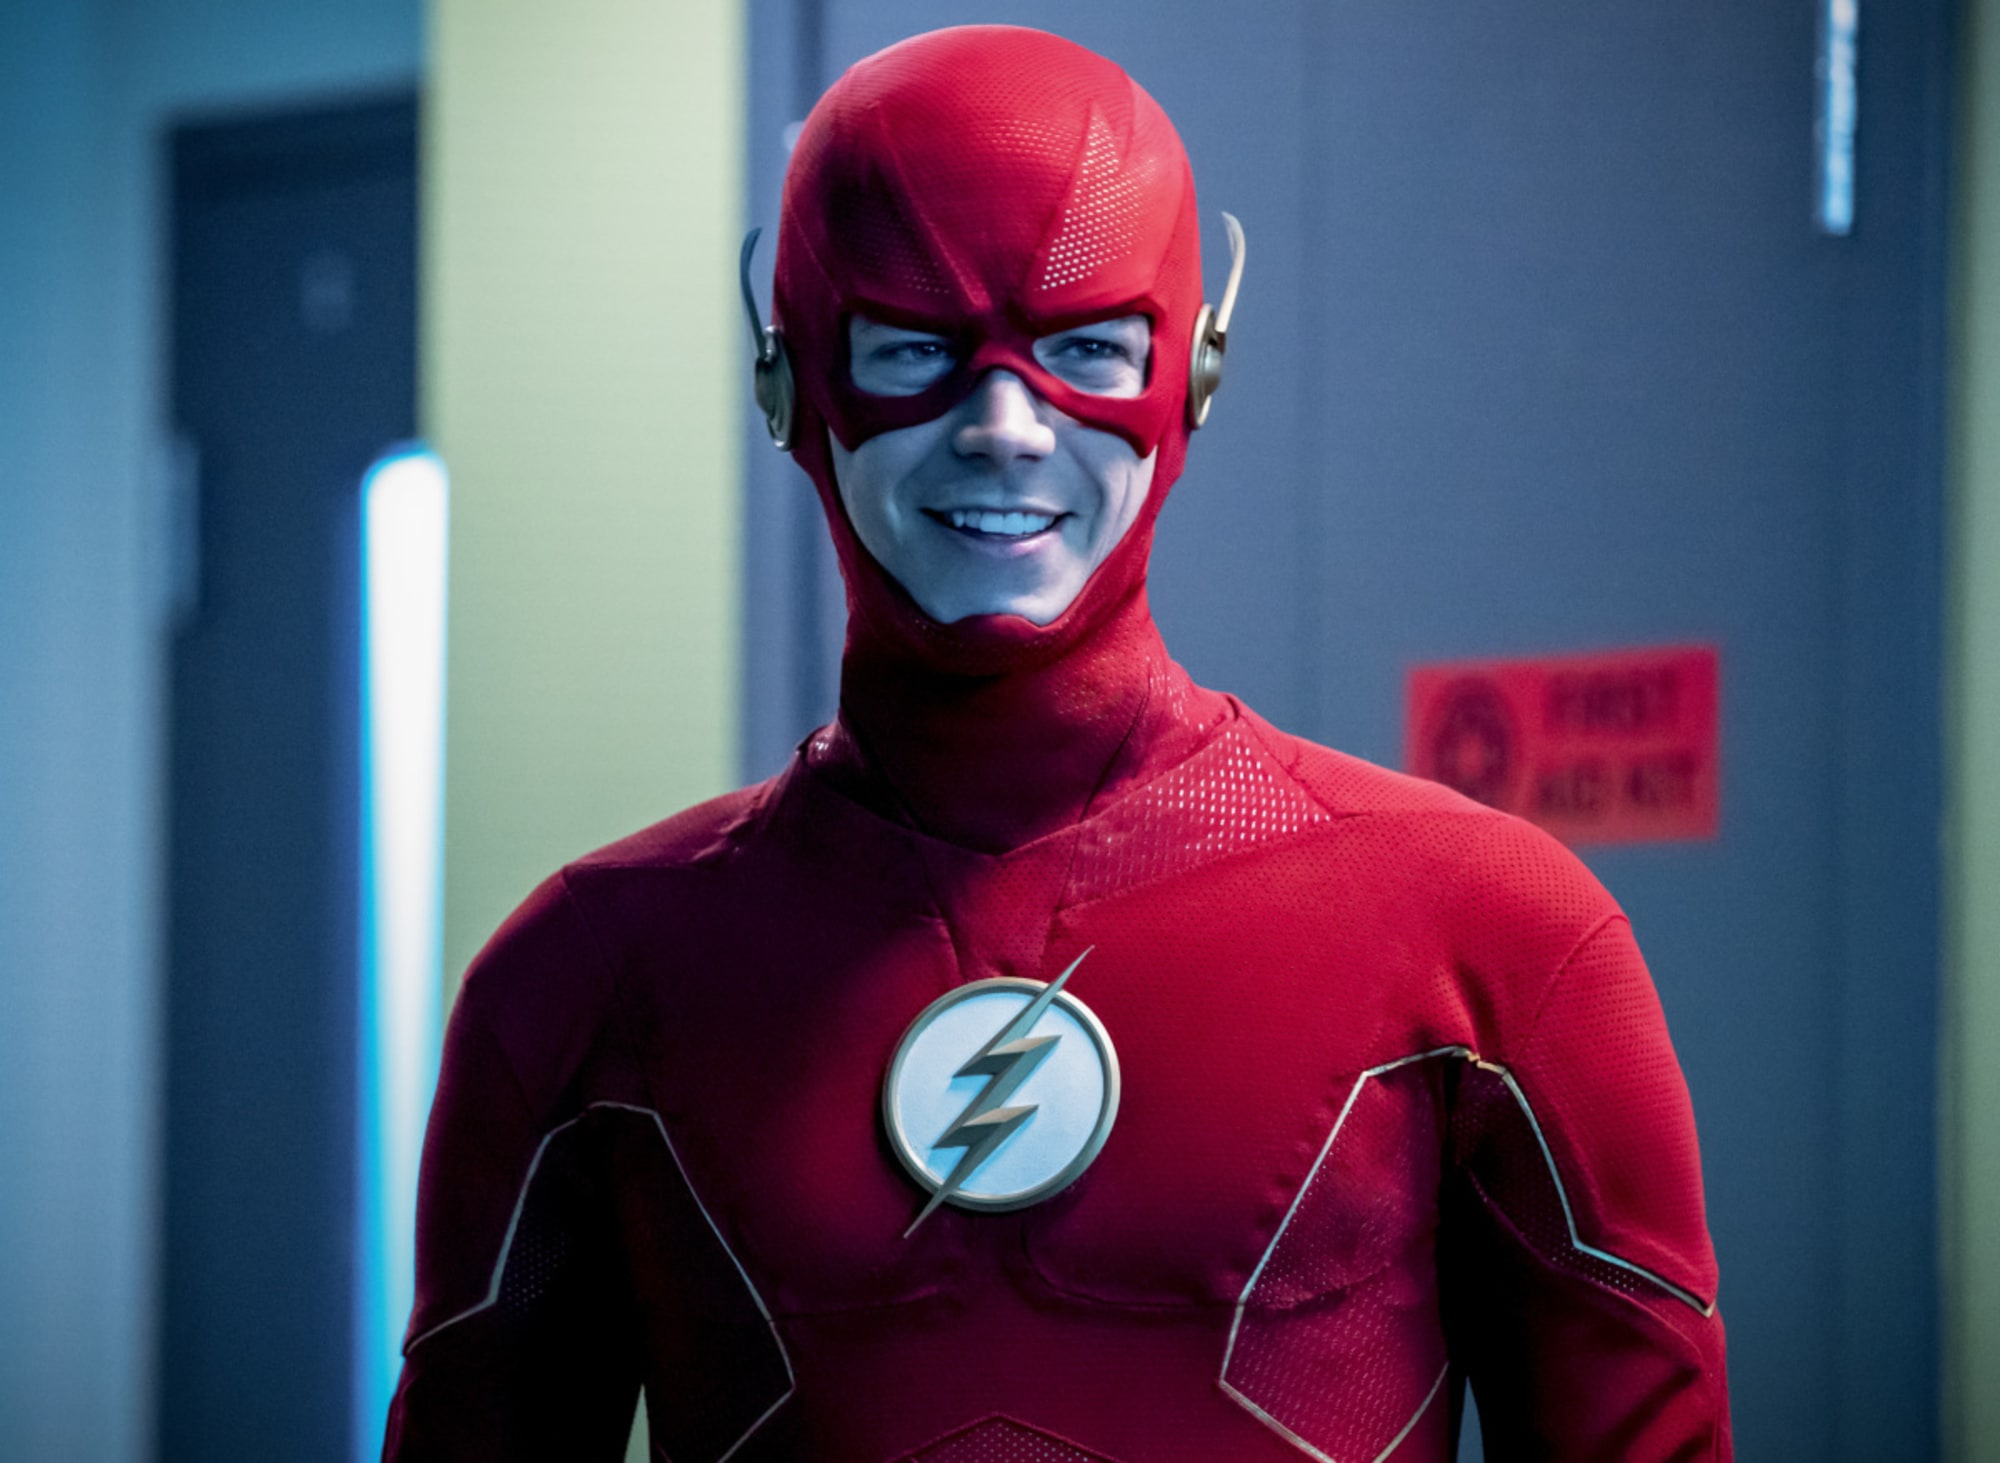 The Flash season 8 release date, cast, synopsis, trailer and more